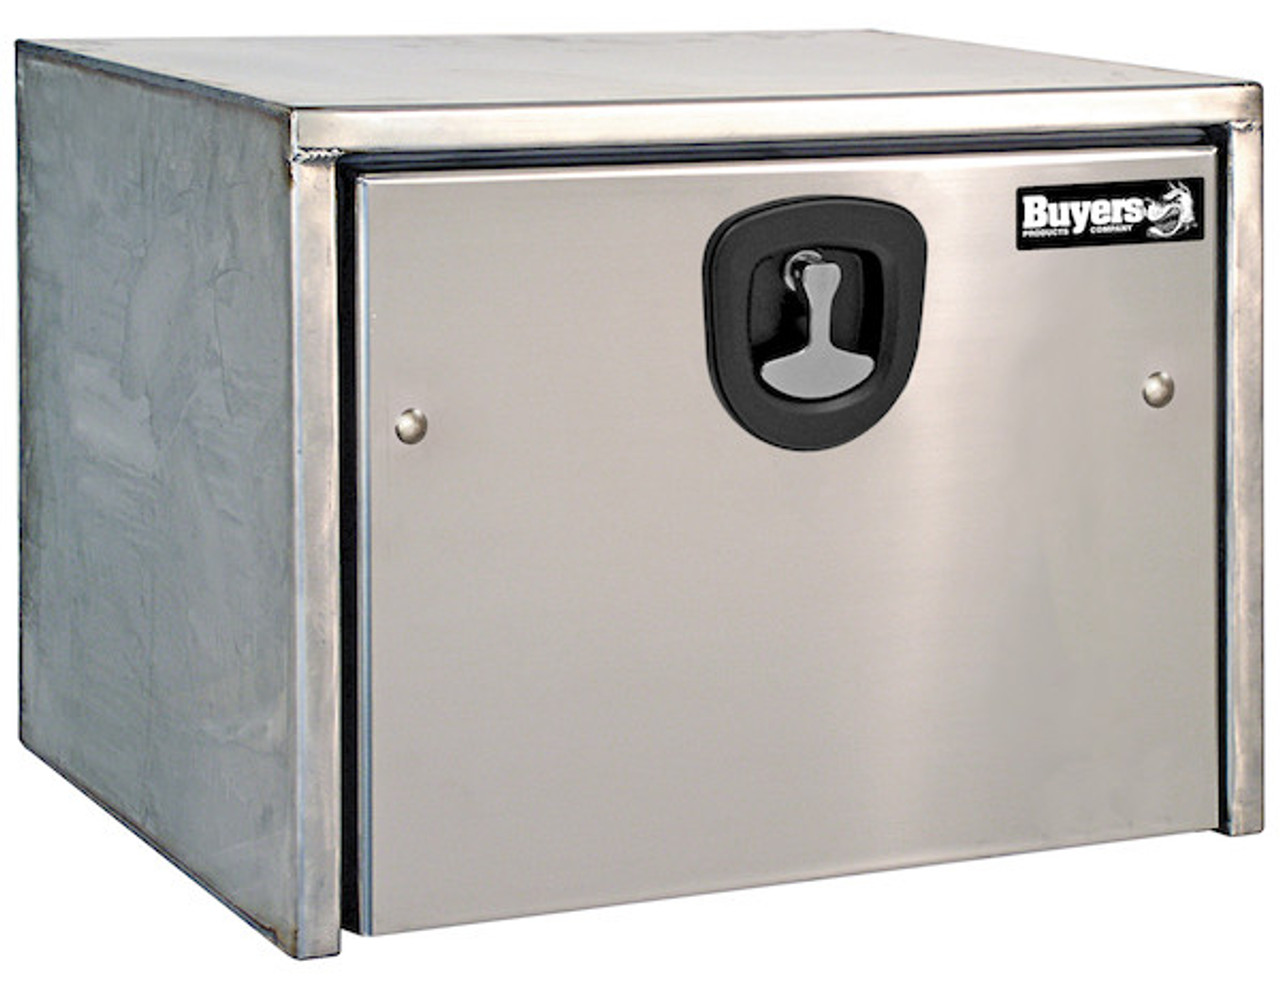 1702605 BUYERS PRODUCTS STAINLESS STEEL UNDERBODY TRUCK BOX WITH POLISHED STAINLESS STEEL DOOR TOOLBOX